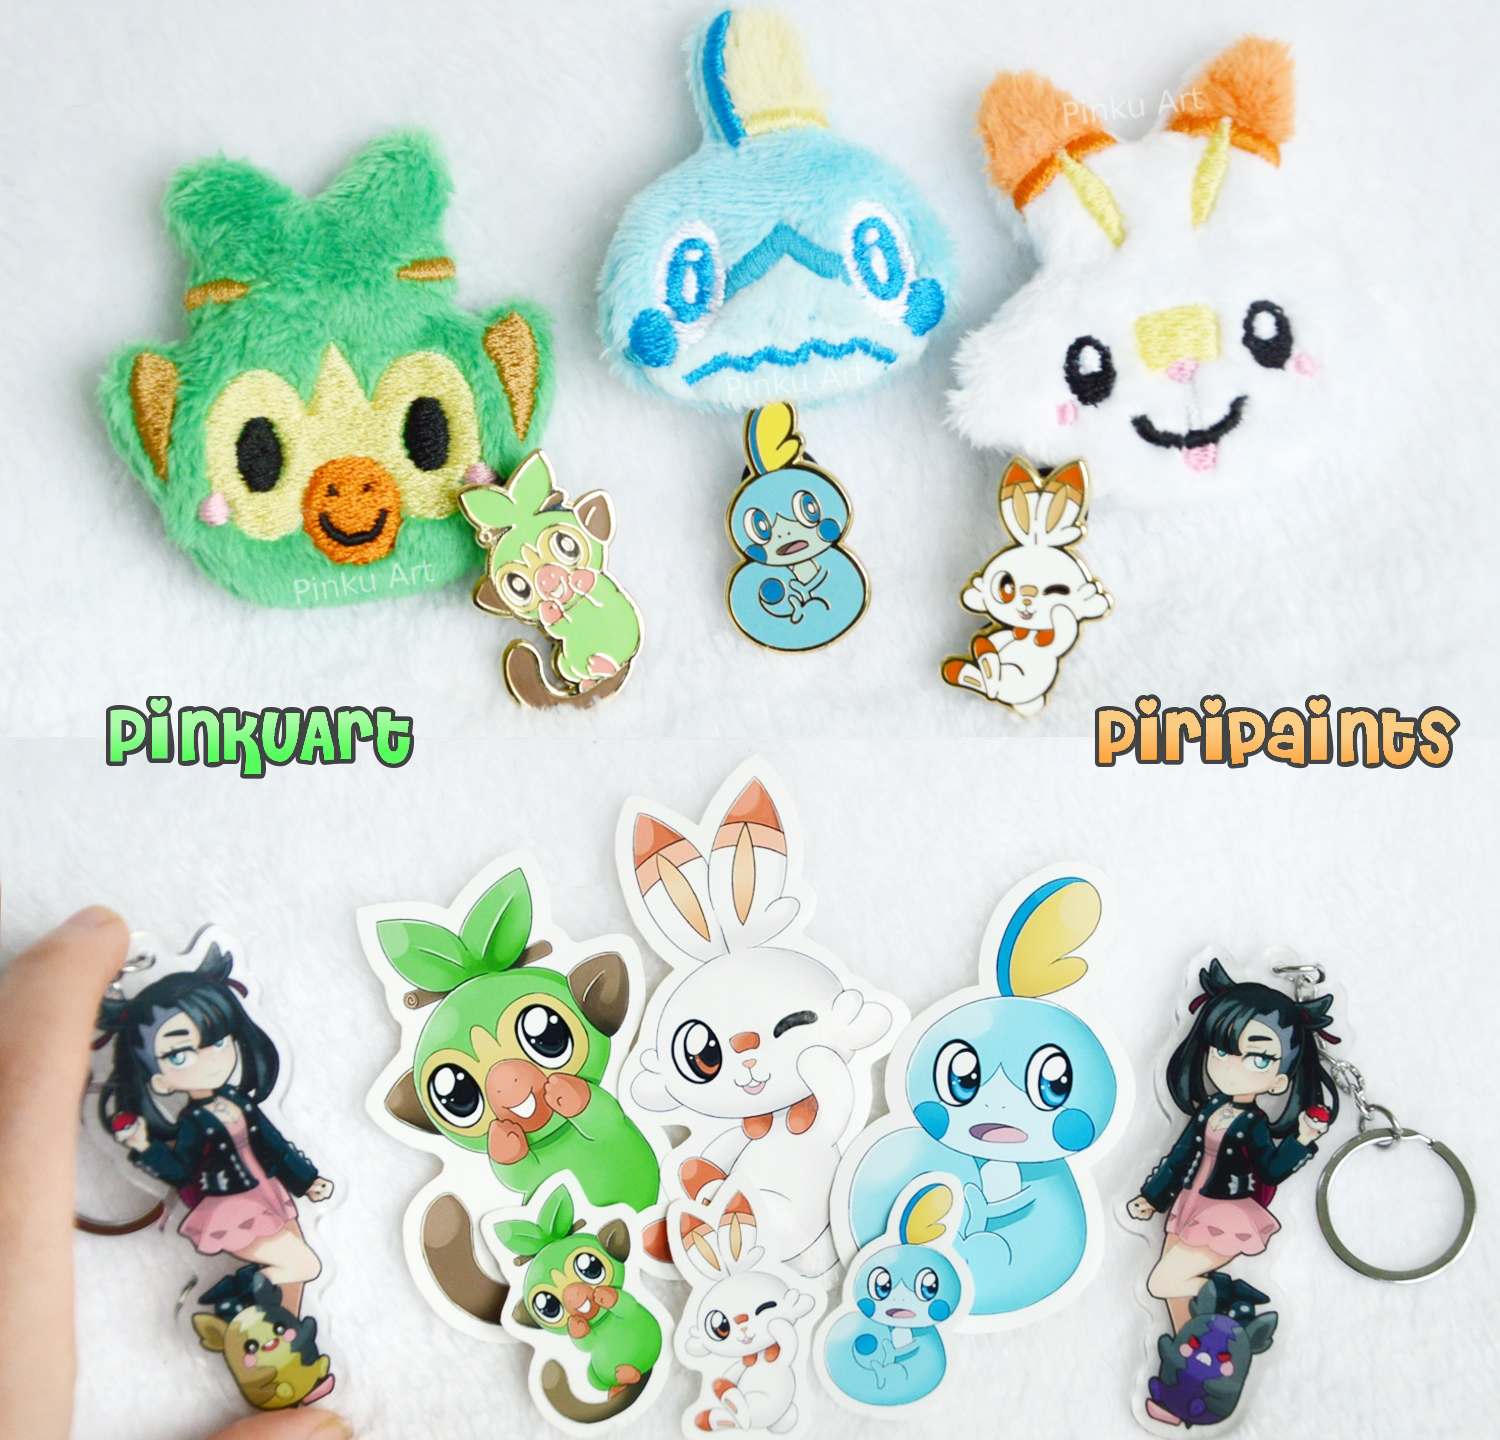 Plush clips, enamel pins & stickers, charms